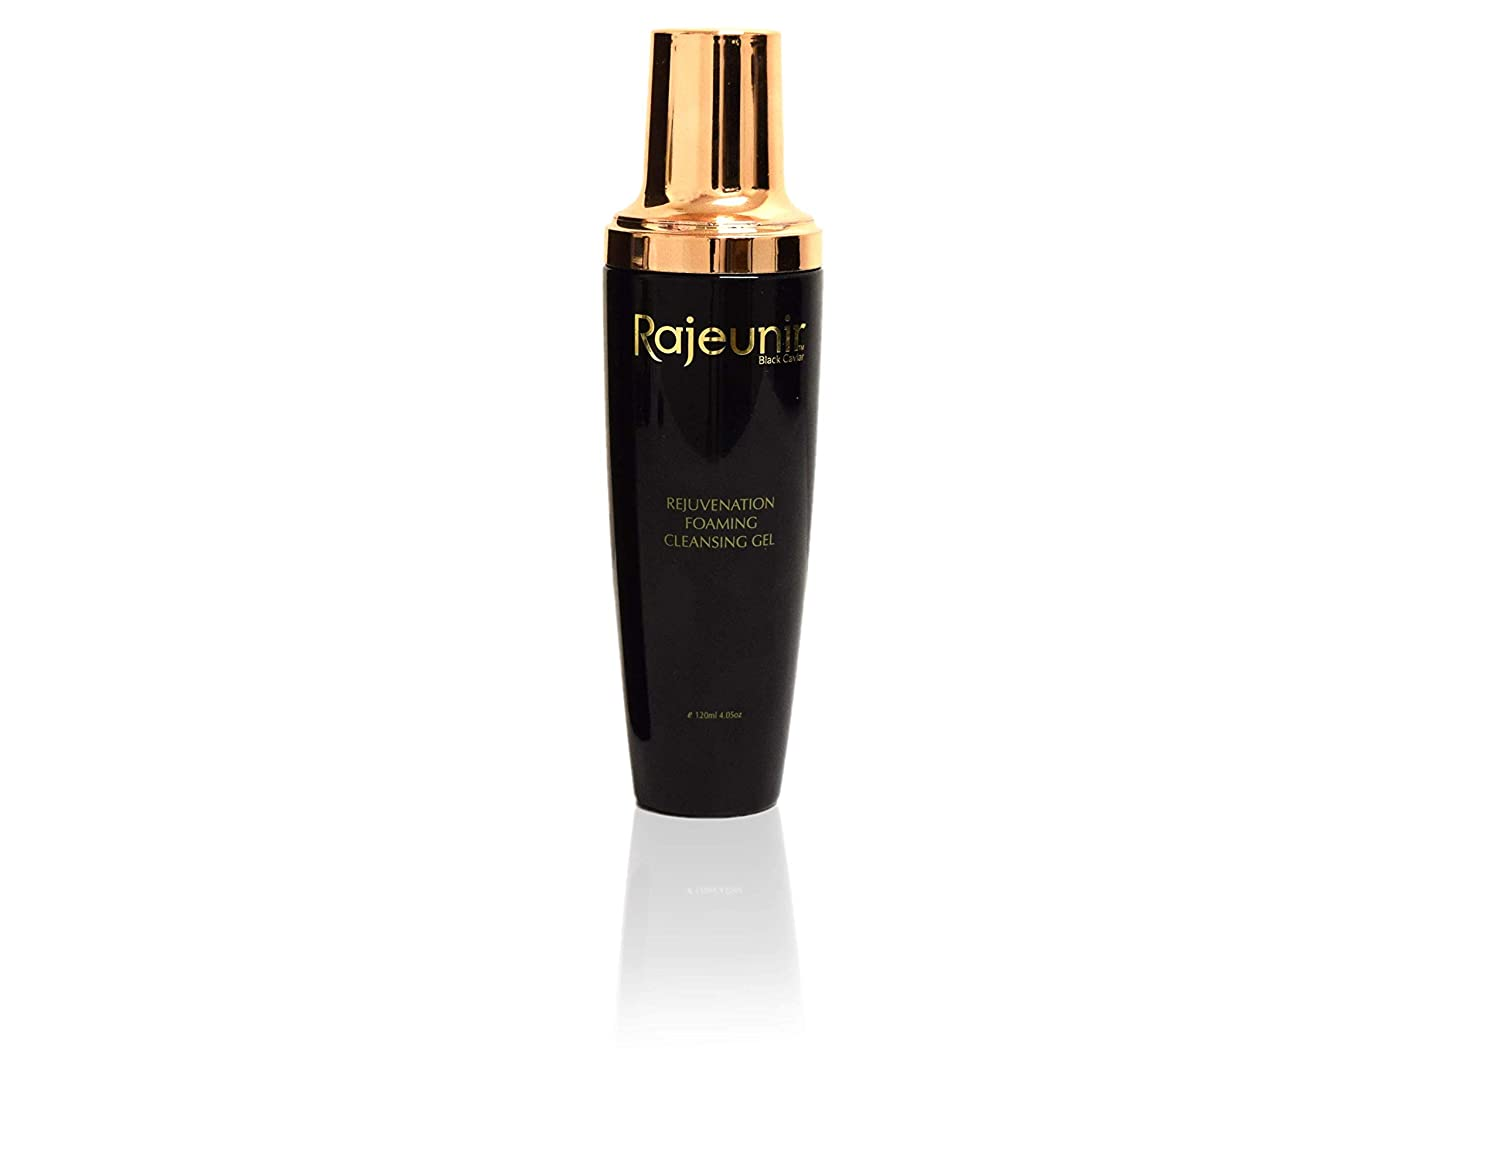 Rajeunir Black Caviar Rejuvenation Foaming Cleansing Gel Purifies The Skin By Lifting and Removing Makeup, Oil-Based Debris and Impurities